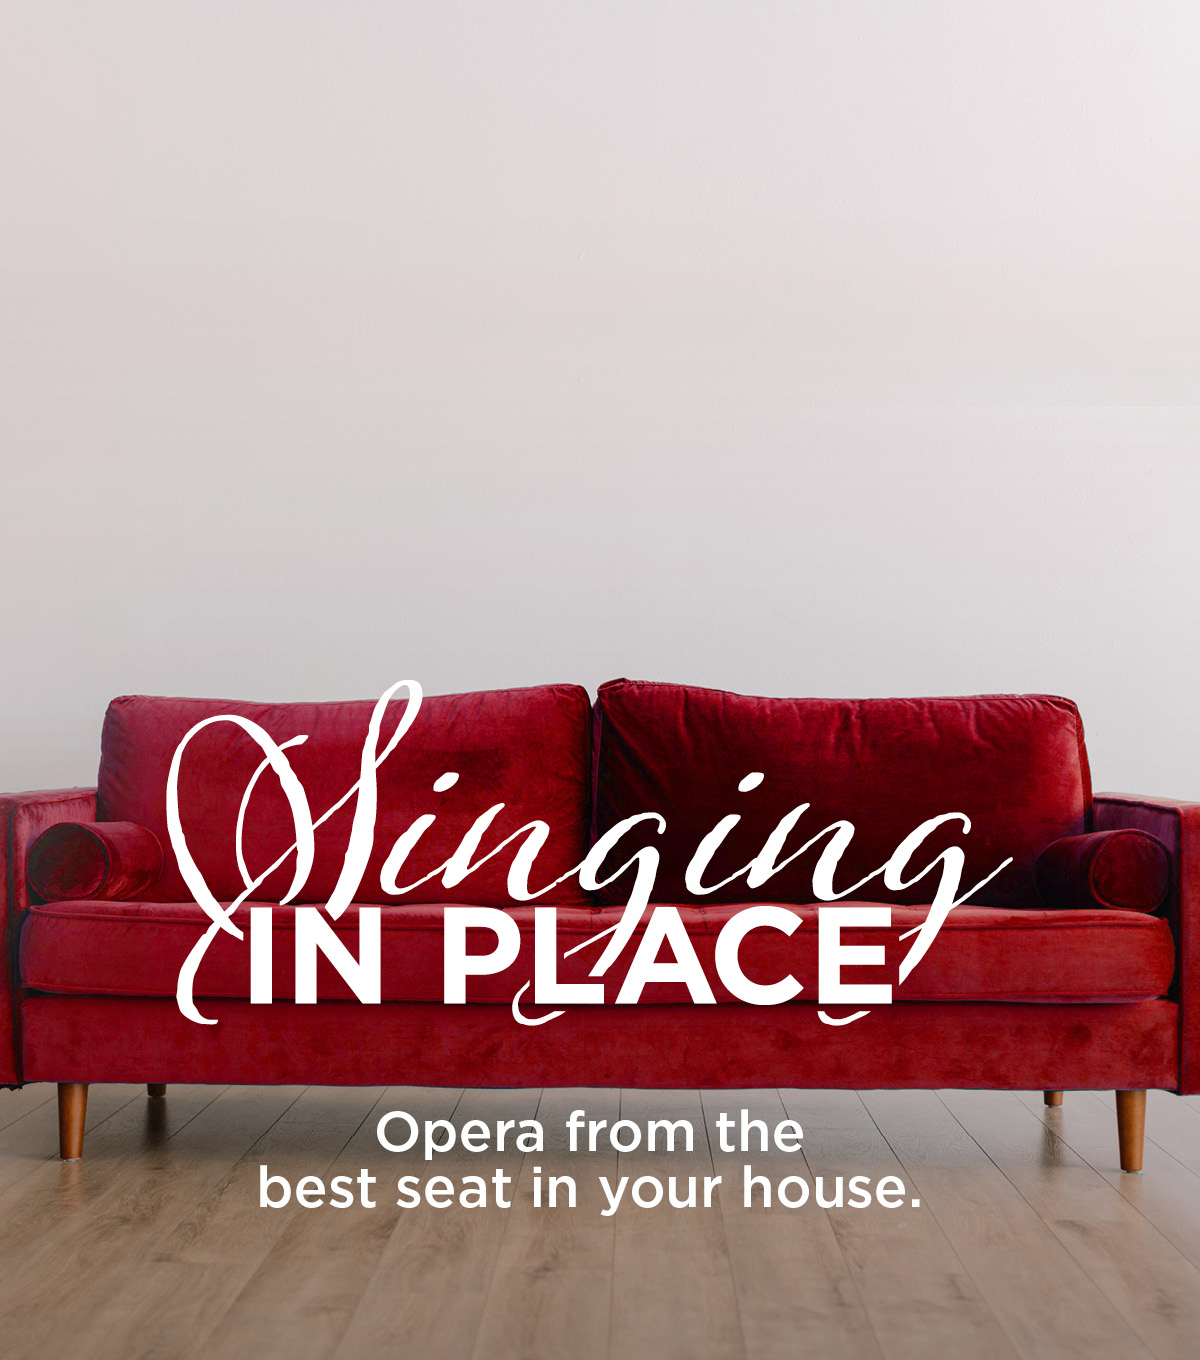 Singing In Place: Opera from the best seat in your house.